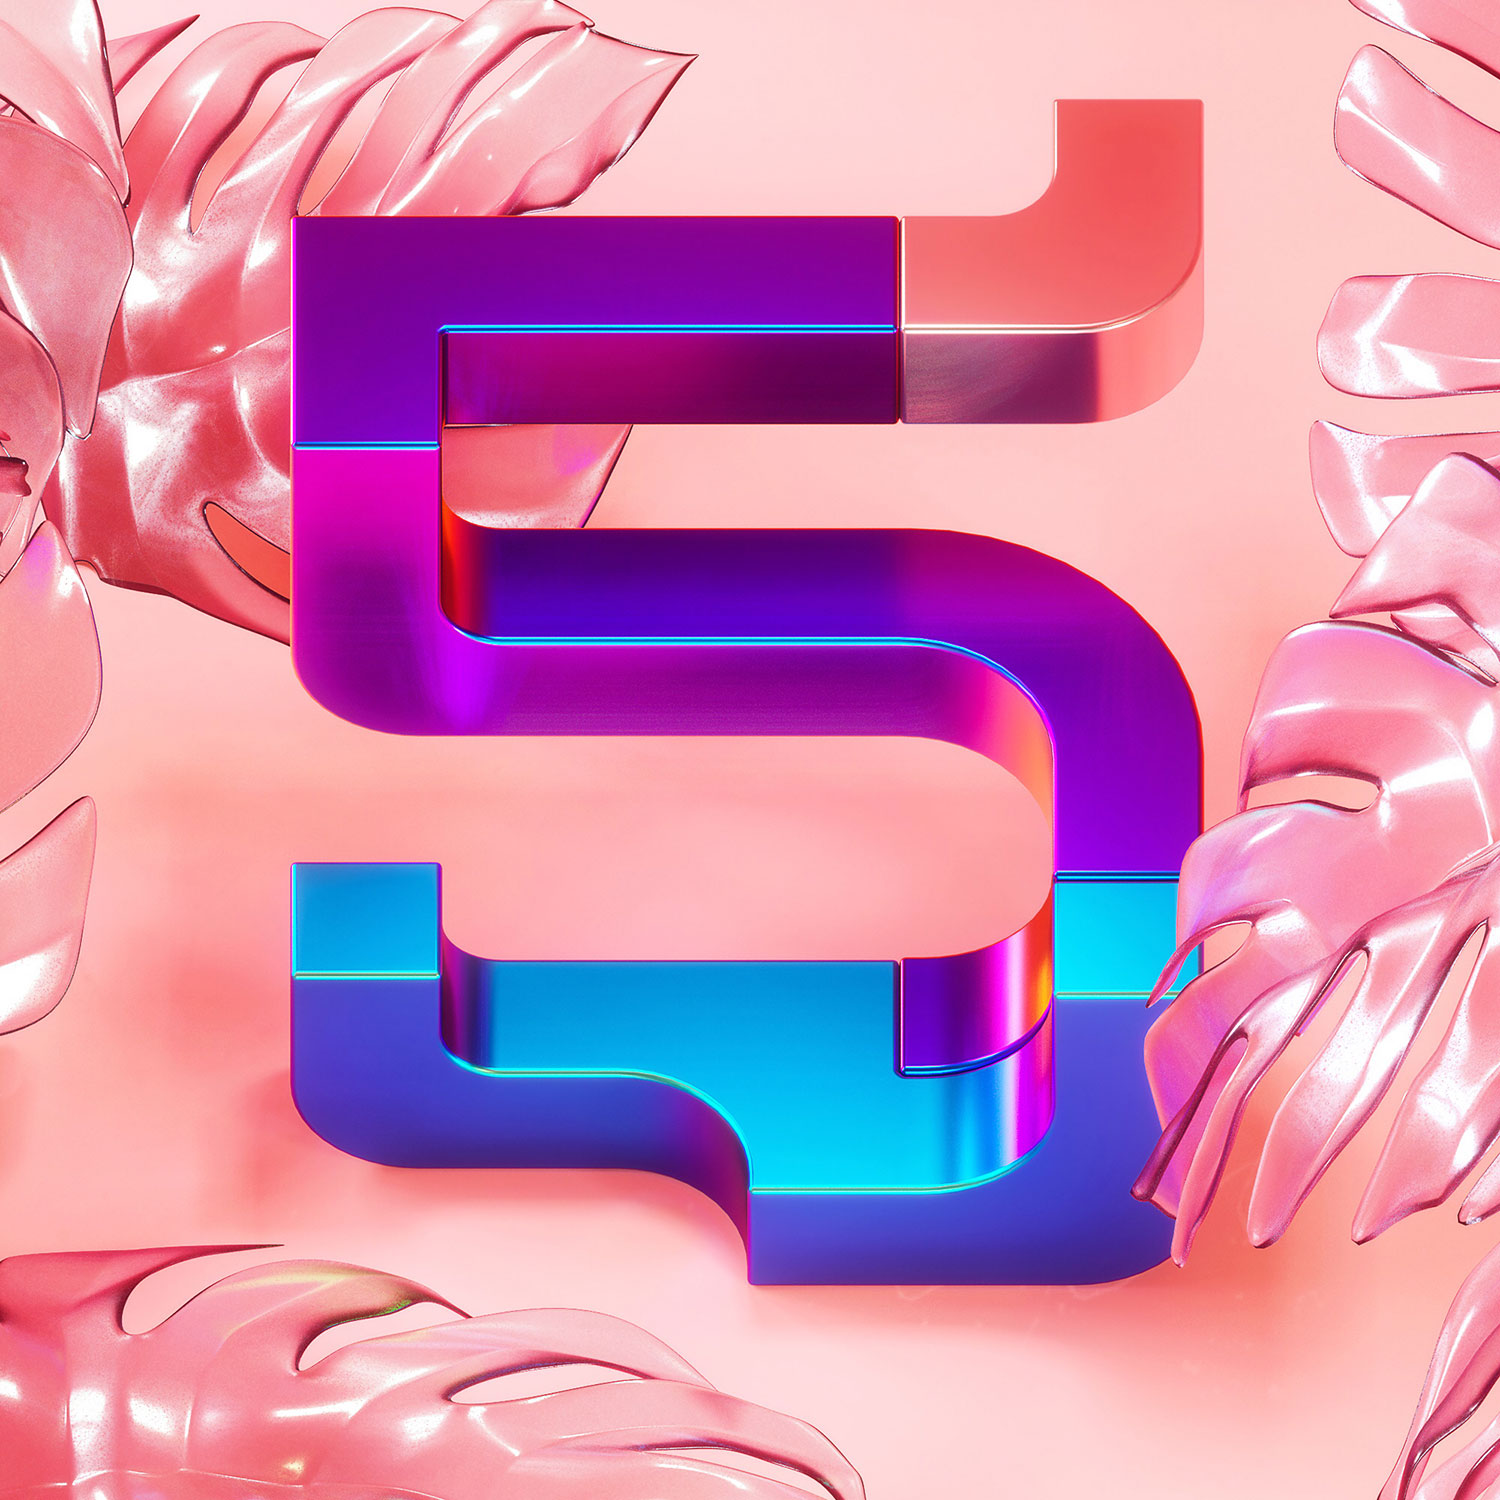 36 Days of Type 2018 - 3D typography number 5 visual.